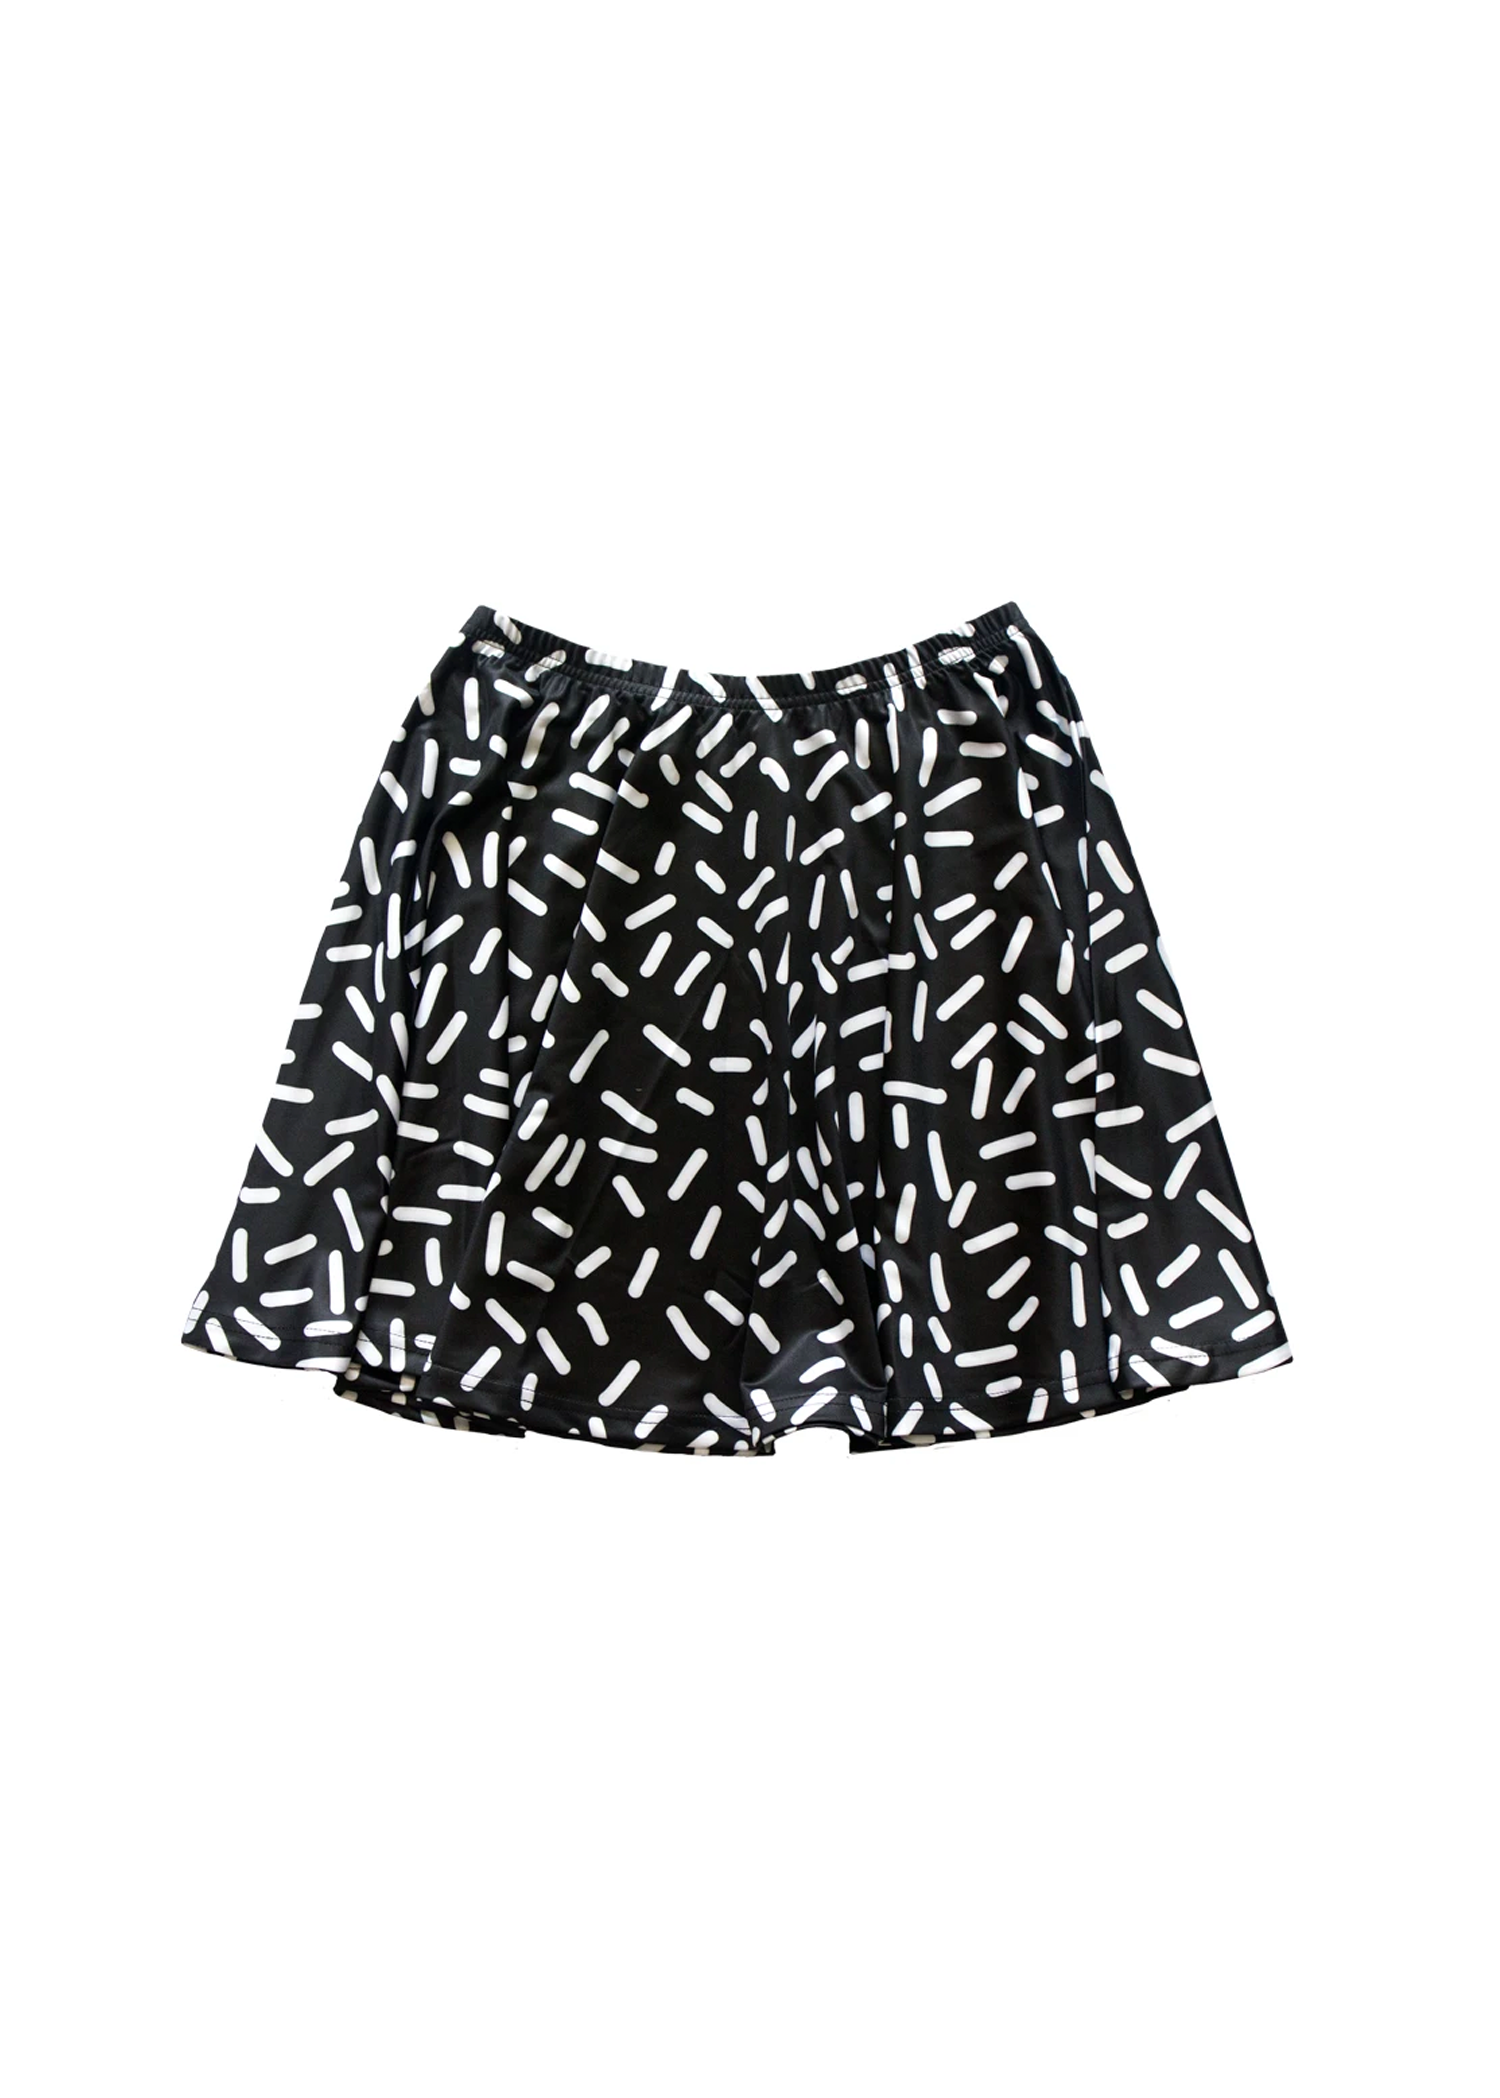 black confetti skirt